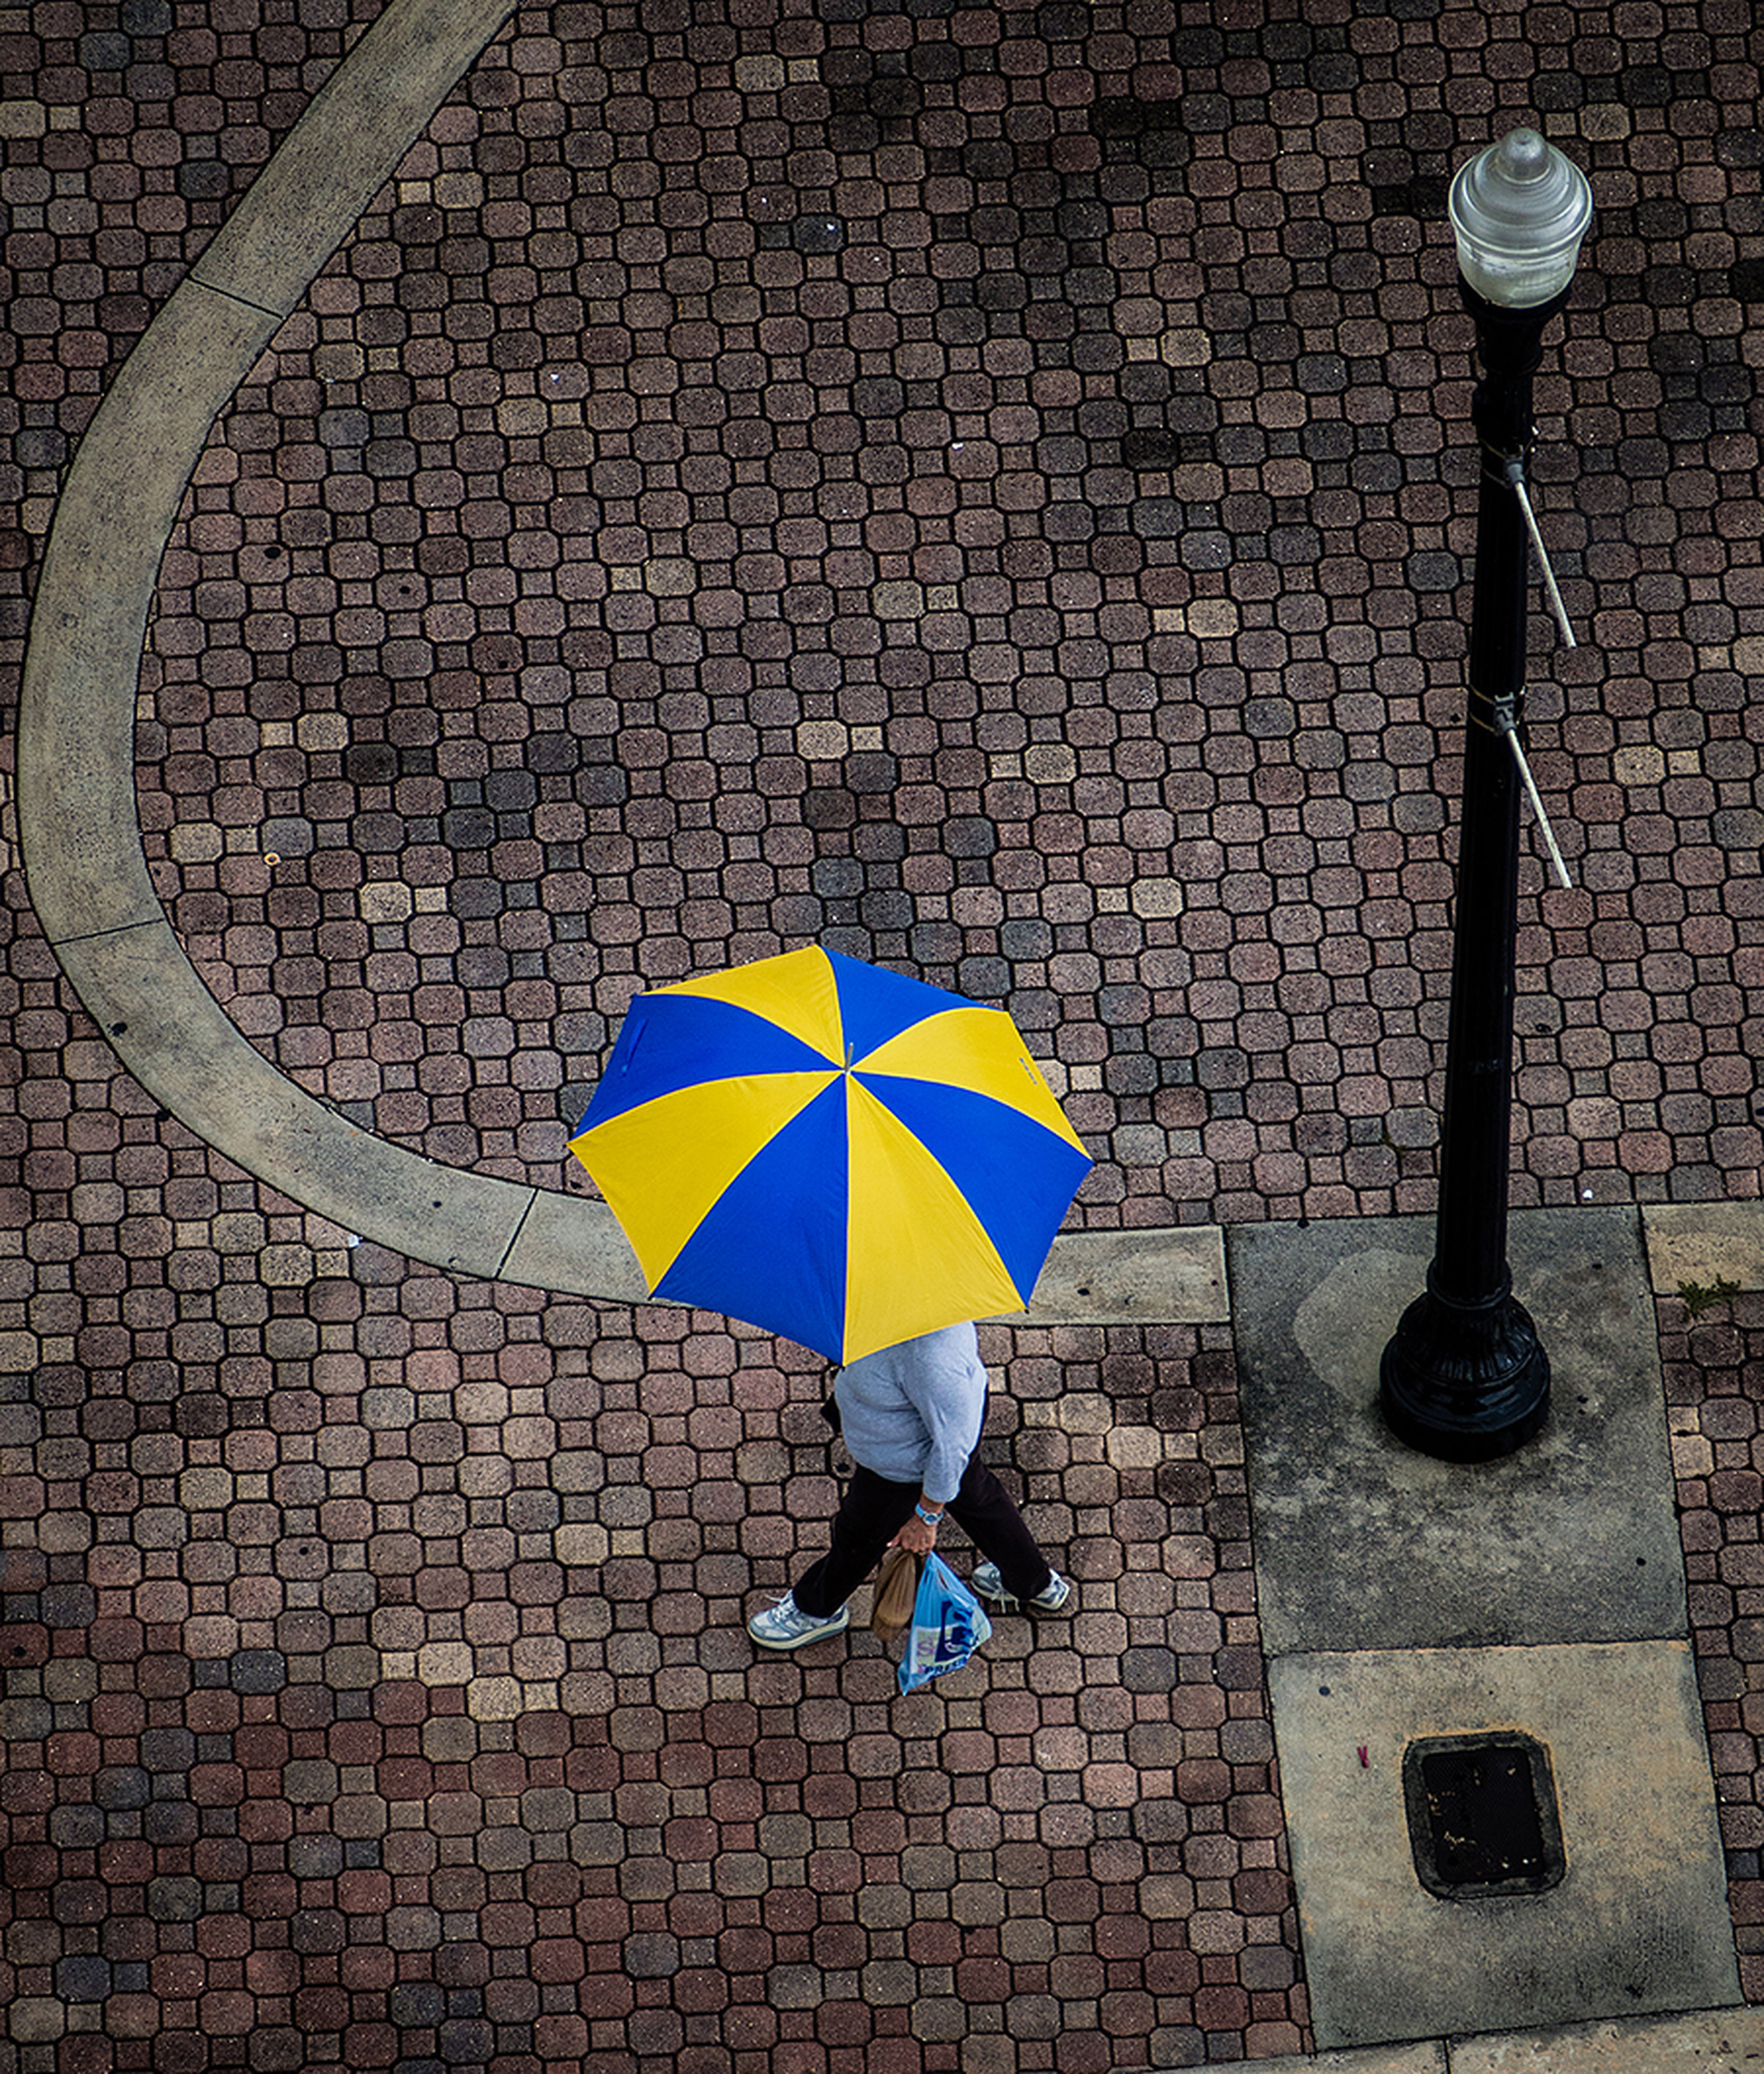 umbrella, cobblestone, art and craft, art, multi colored, creativity, wall - building feature, street, pattern, built structure, tiled floor, high angle view, day, paving stone, sidewalk, brick wall, outdoors, architecture, shadow, wall